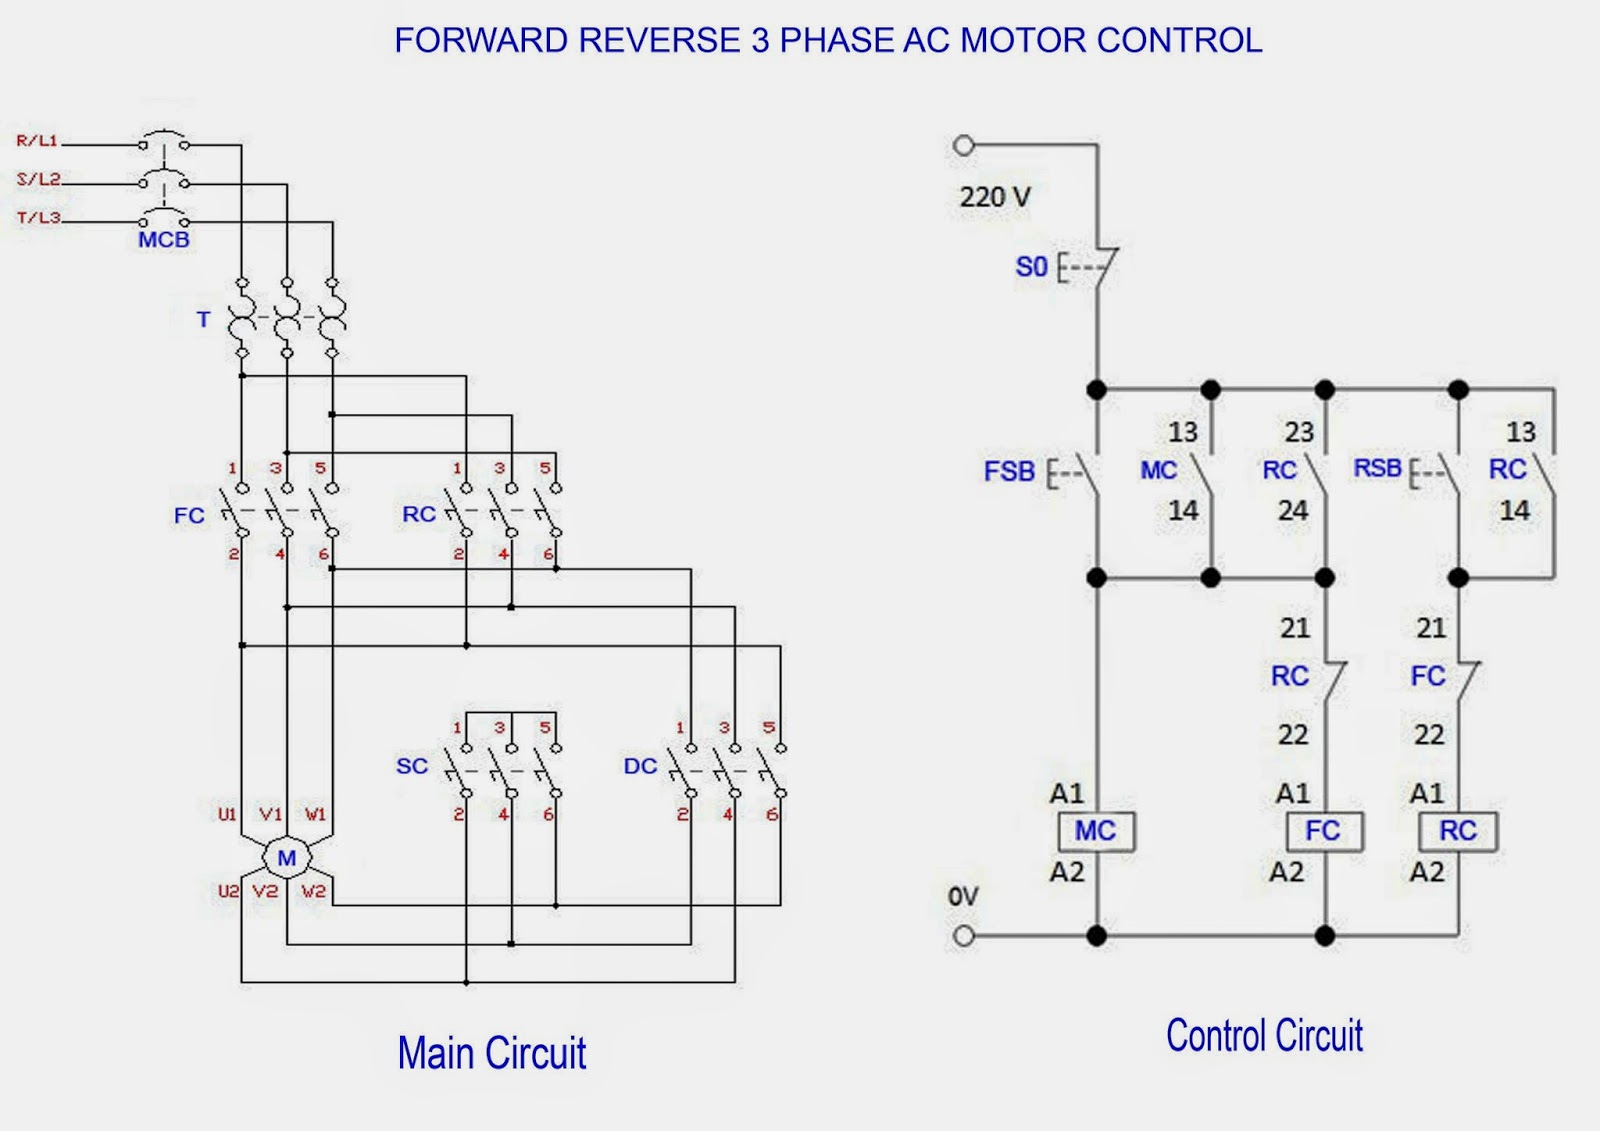 Three Phase Controller Wiring Diagram Schemes 208 3 Forward Reverse Ac Motor Control Electrical 6 Wire